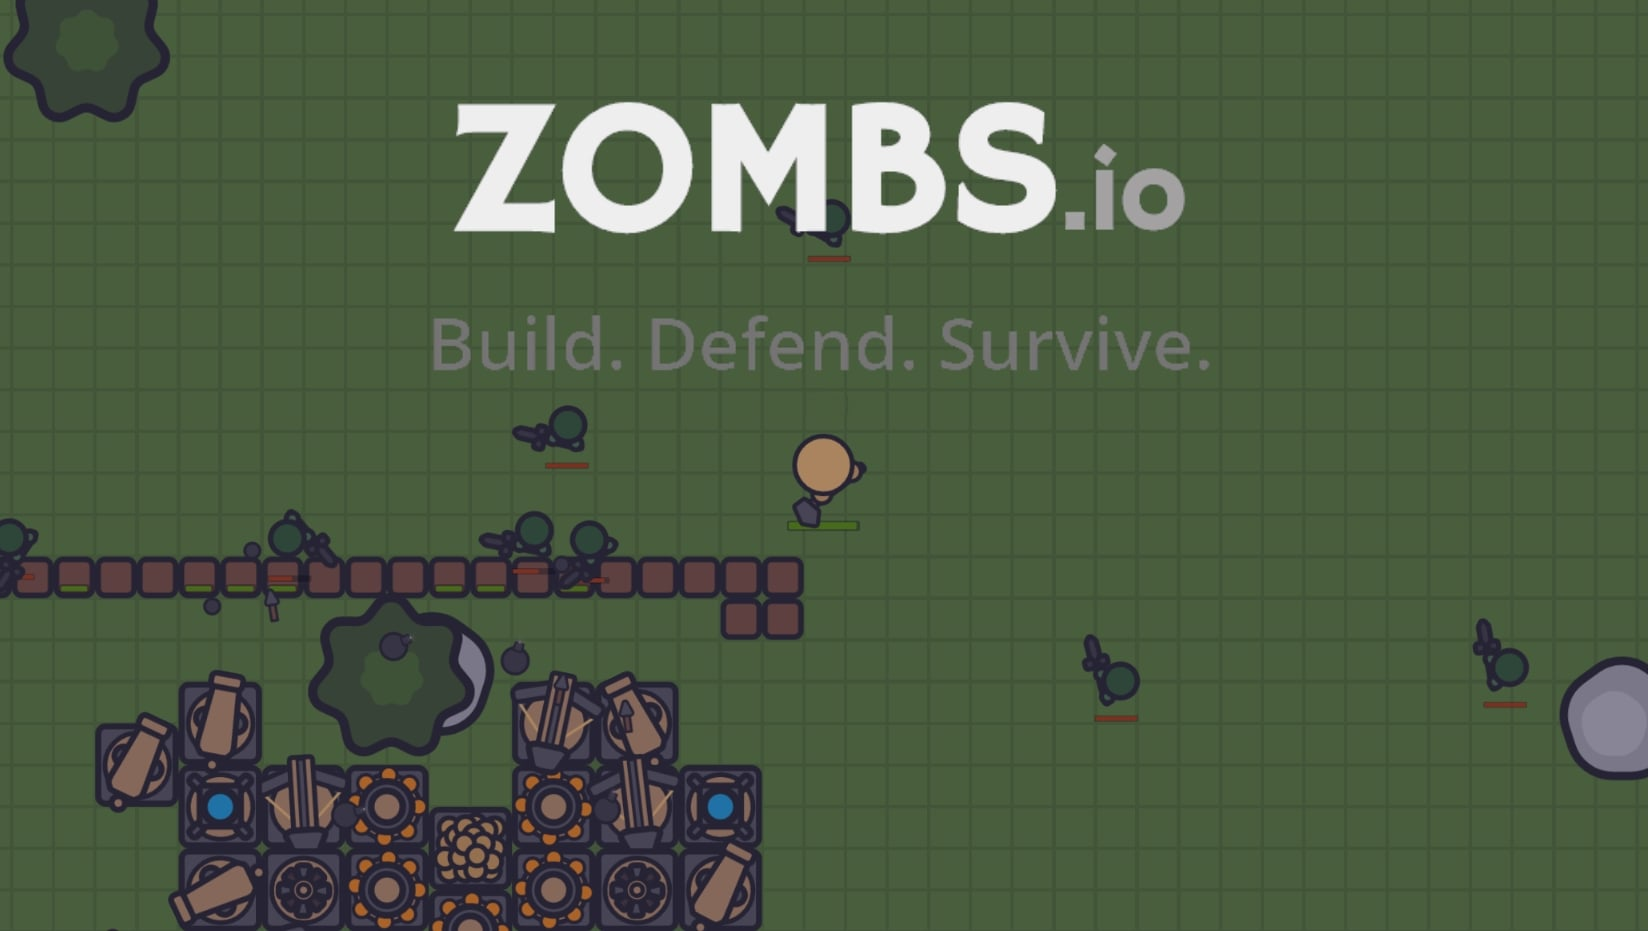 Zombs.io thumbnail image. Play IO Games at iogames.network!